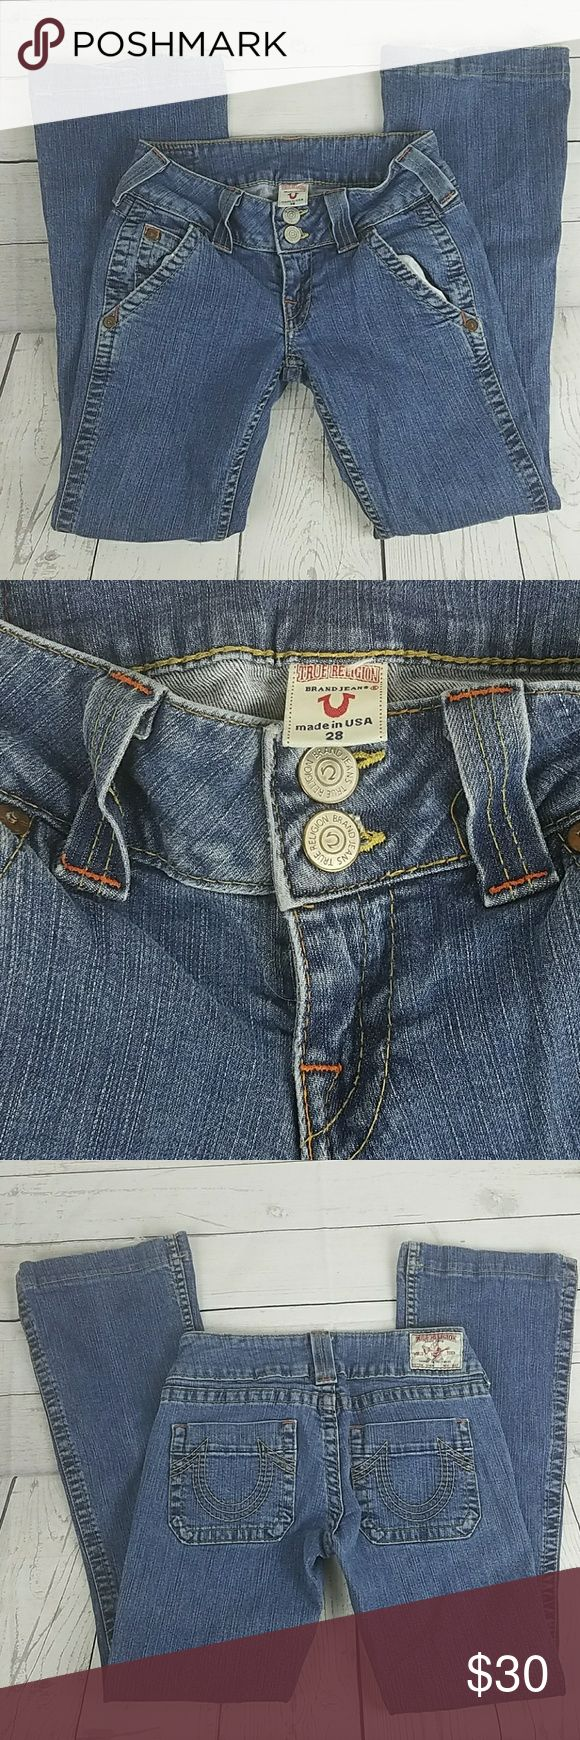 Women's True Religion Jeans Boot Cut Size 28 These Women's True Religion Jeans are in good condition. Gently used. These are the Sammy model of True Religion. Boot Cut. Size 28 Inseam  29 Rise 7 inches True Religion Jeans Boot Cut